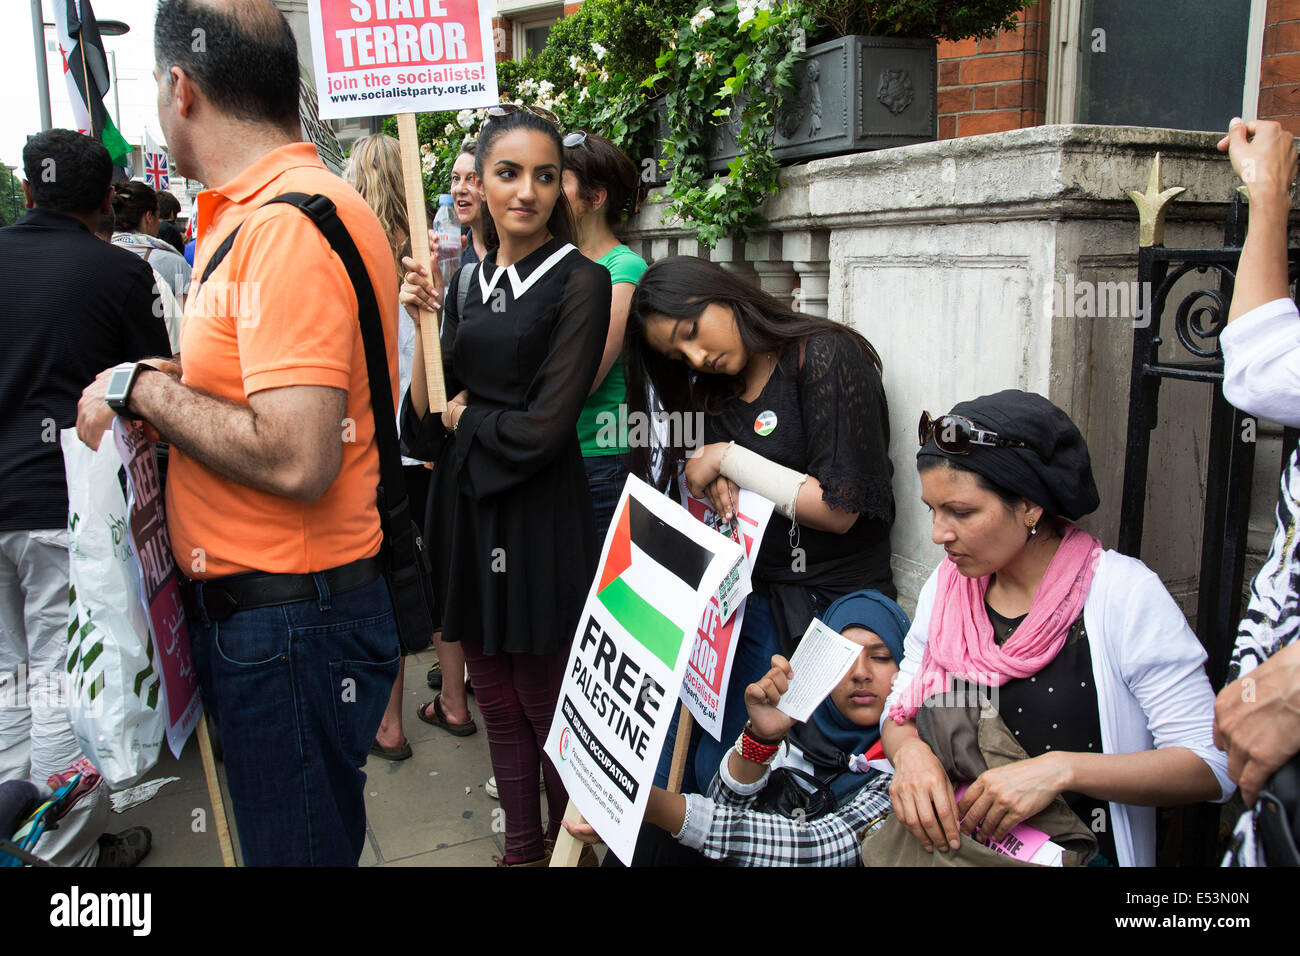 London, UK. Saturday 19th July 2014. Pro-Palestinian protesters in their tens of thousands march through central - Stock Image